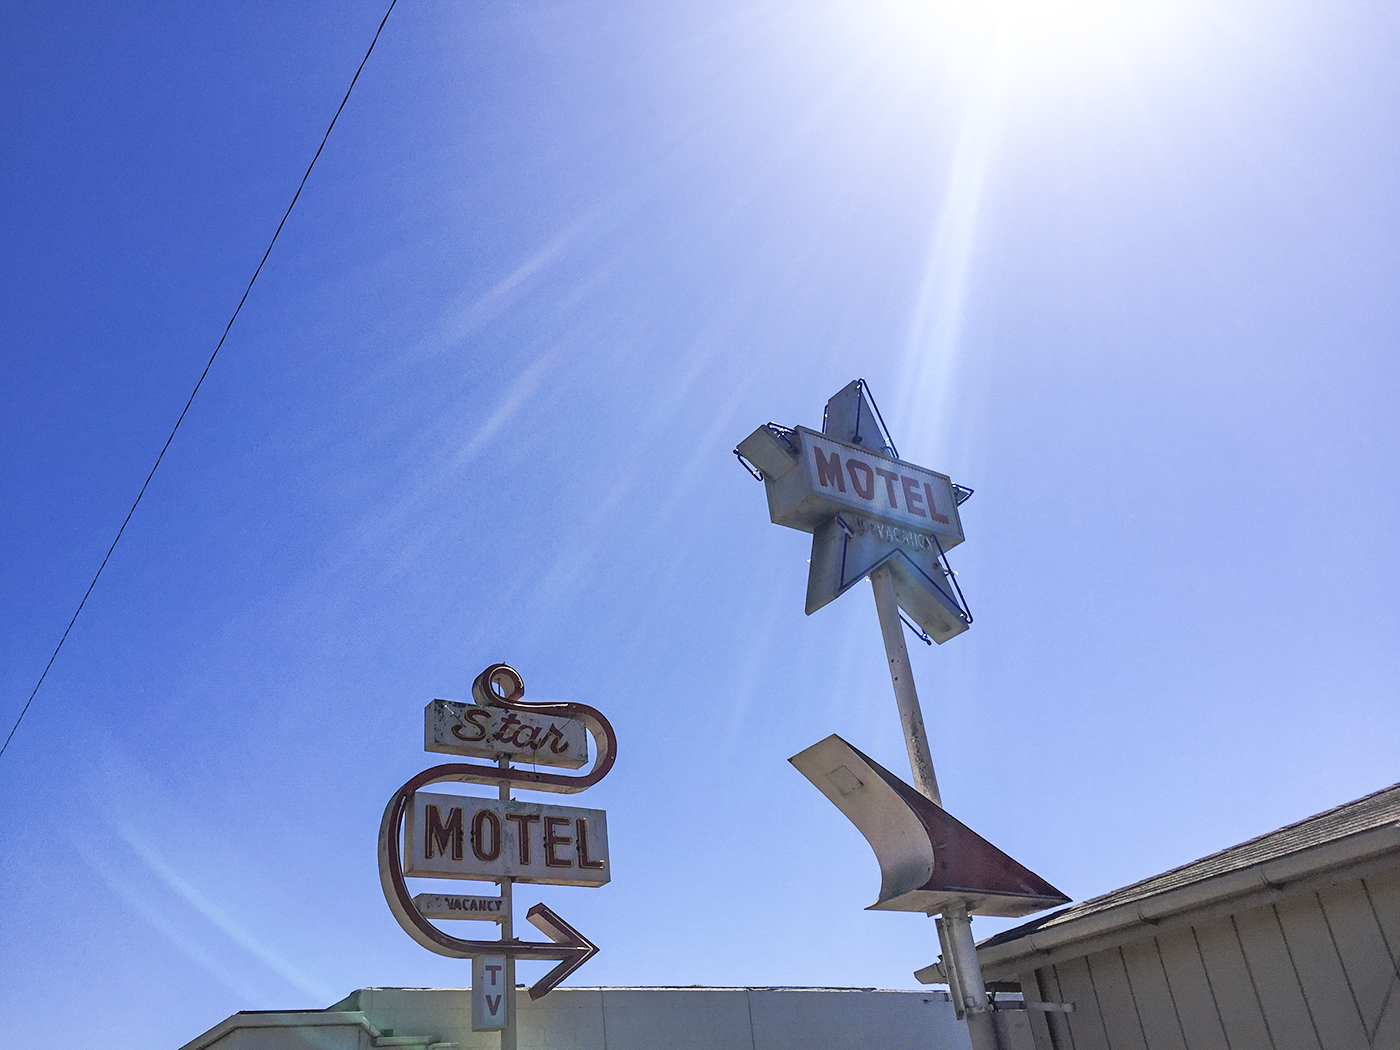 Perhaps this is where the Jetsons stay when in Lompoc. The 'O' on the star sign reflects the funky geometric shapes.